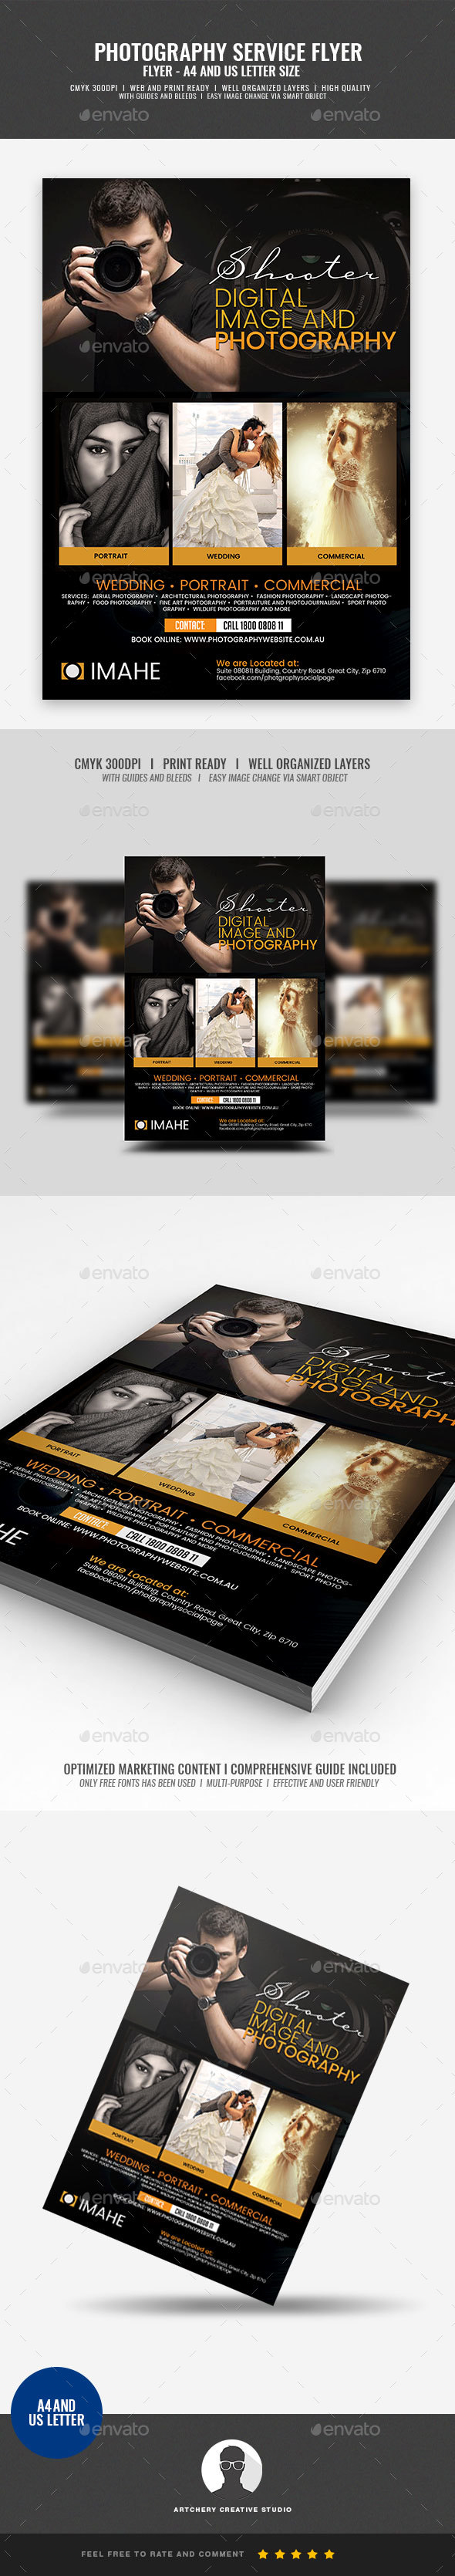 Photographer Promotional Campaign Flyer - Corporate Flyers